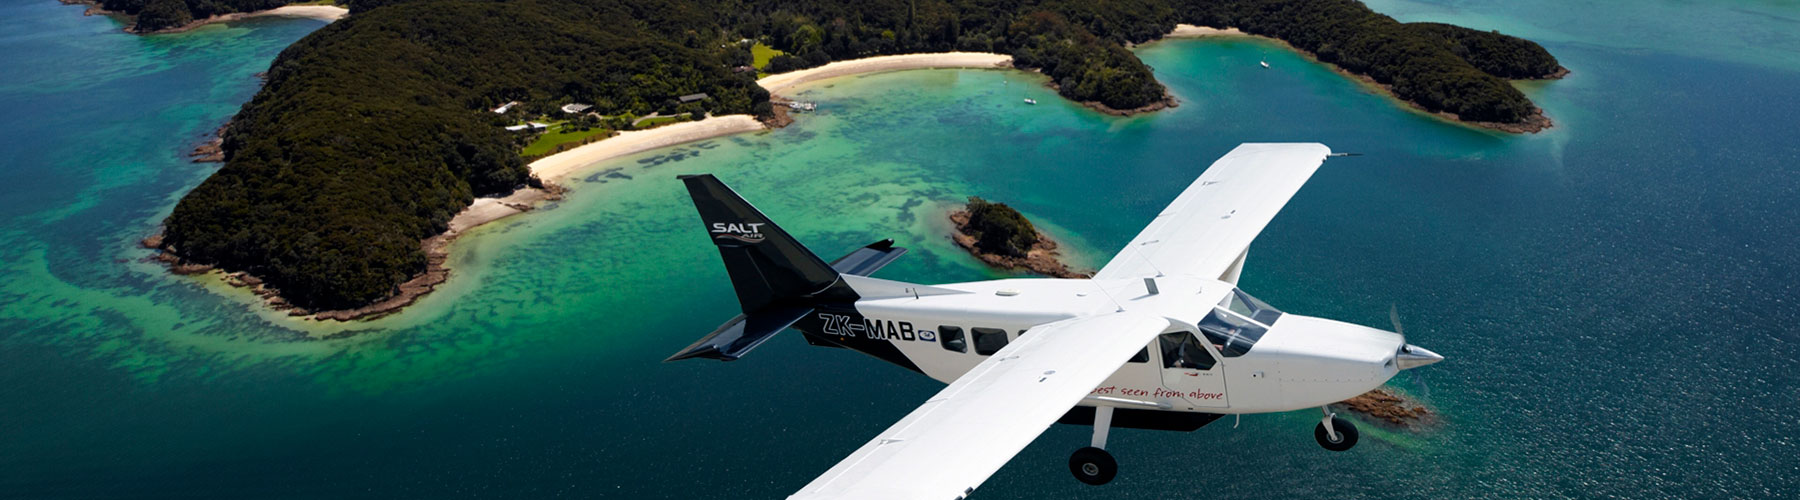 Scenic-Flights Bay of Islands